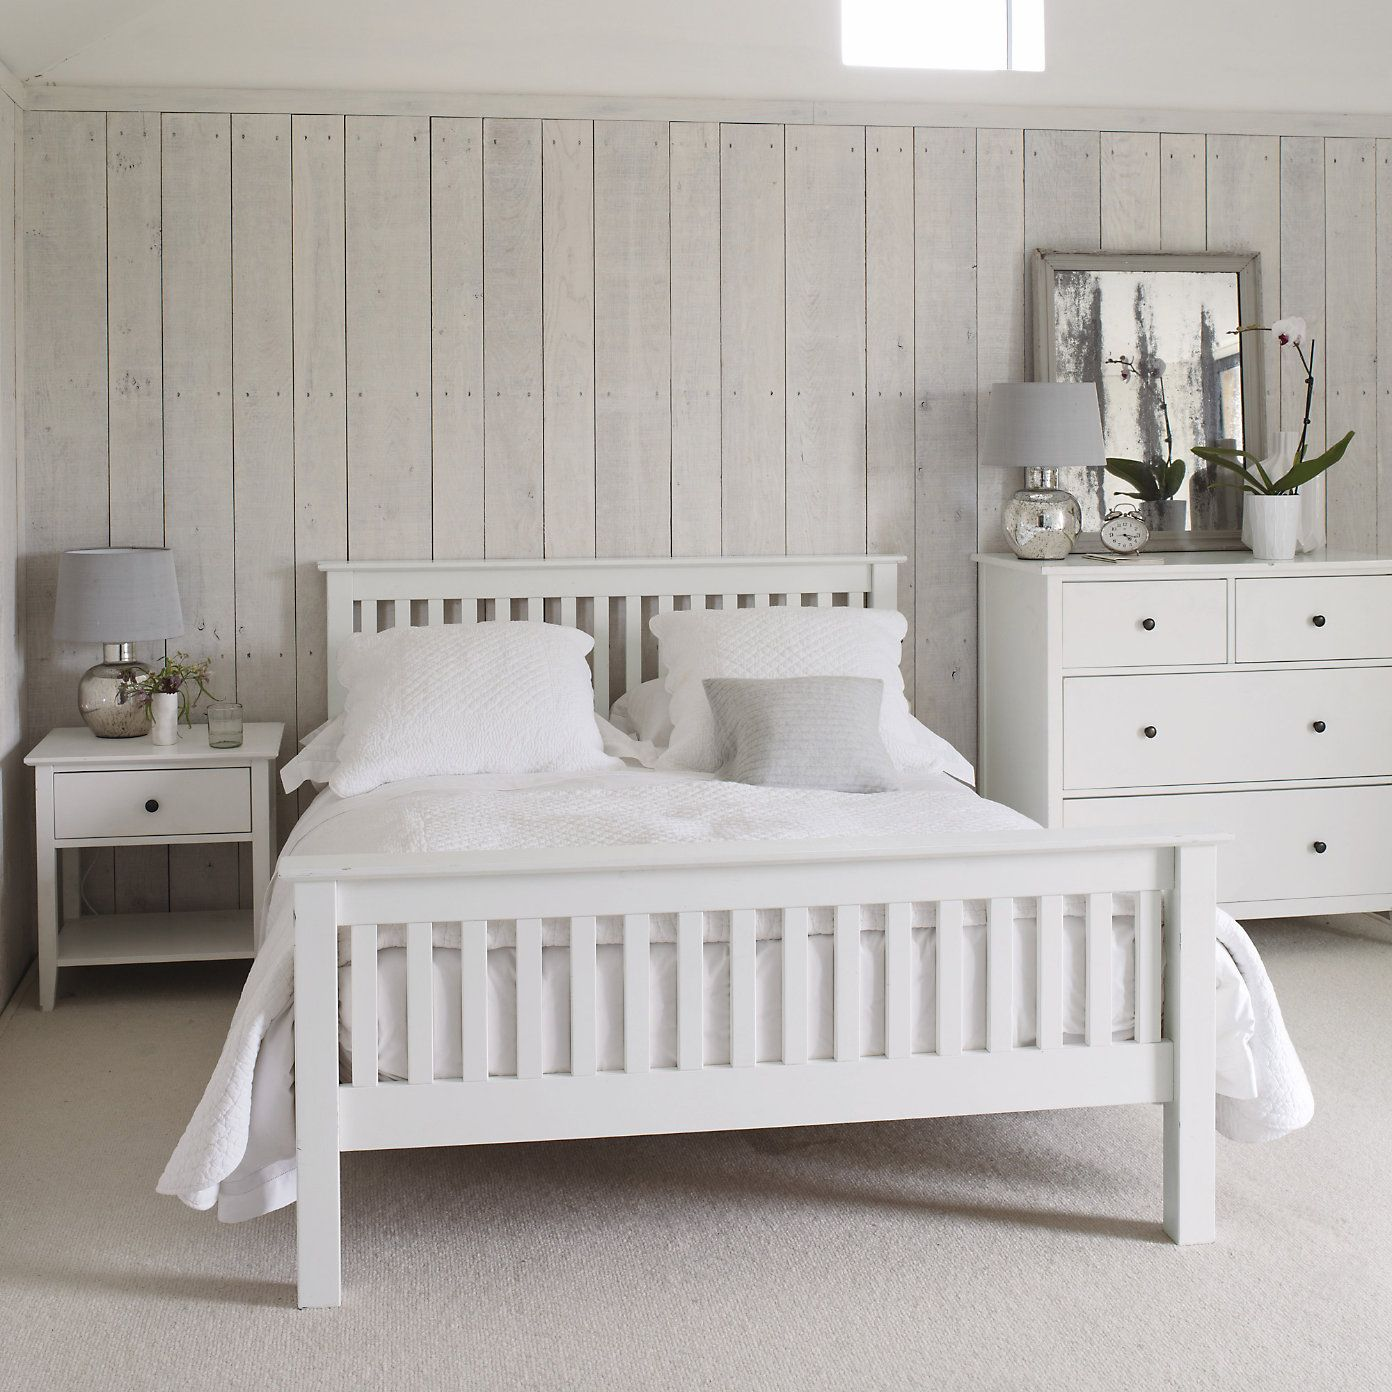 Best Buy Furniture Beds Hampton Bed From The White Company 400 x 300